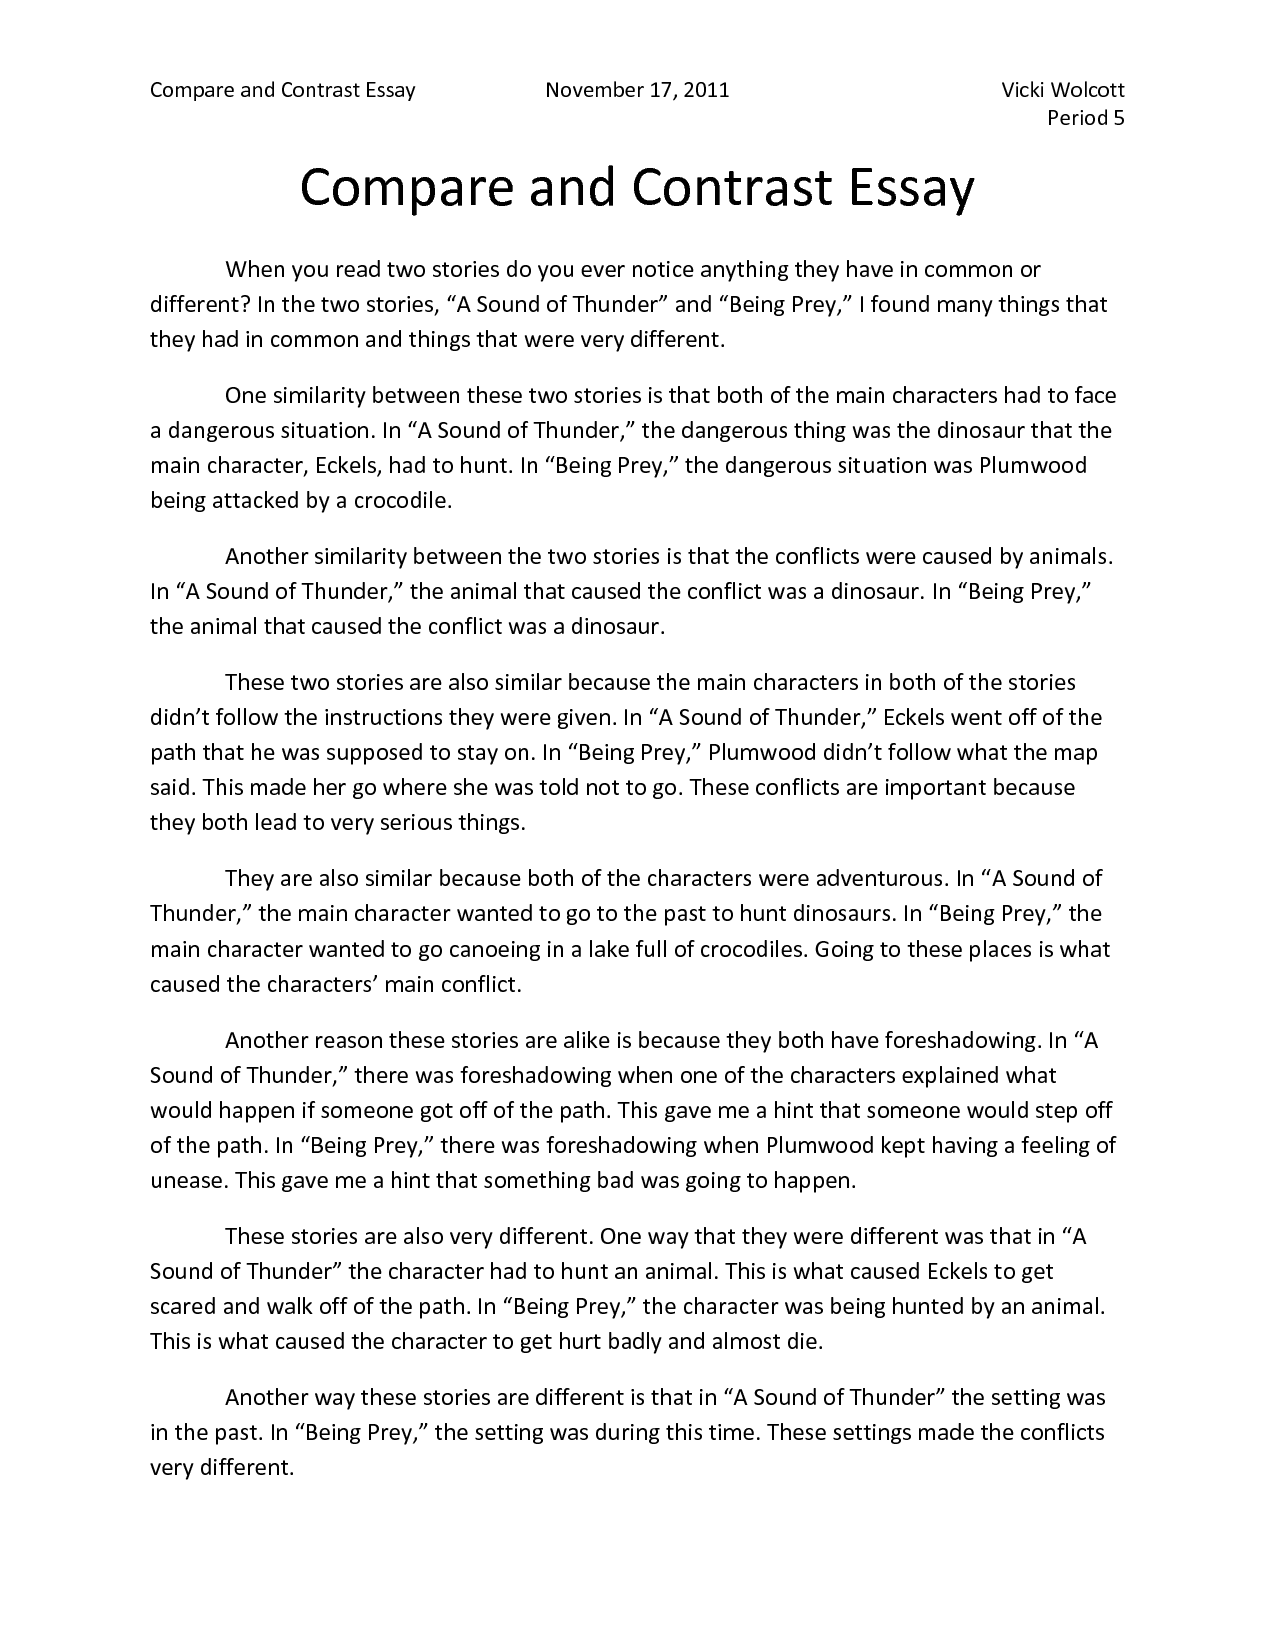 004 Essay Example Compare And Contrast Gallery Template Drawing Art Throughout College Examples Introduction Question Scholarship Free Edexcel Conclusion Frightening Sample 4th Grade Paragraph Ideas Full